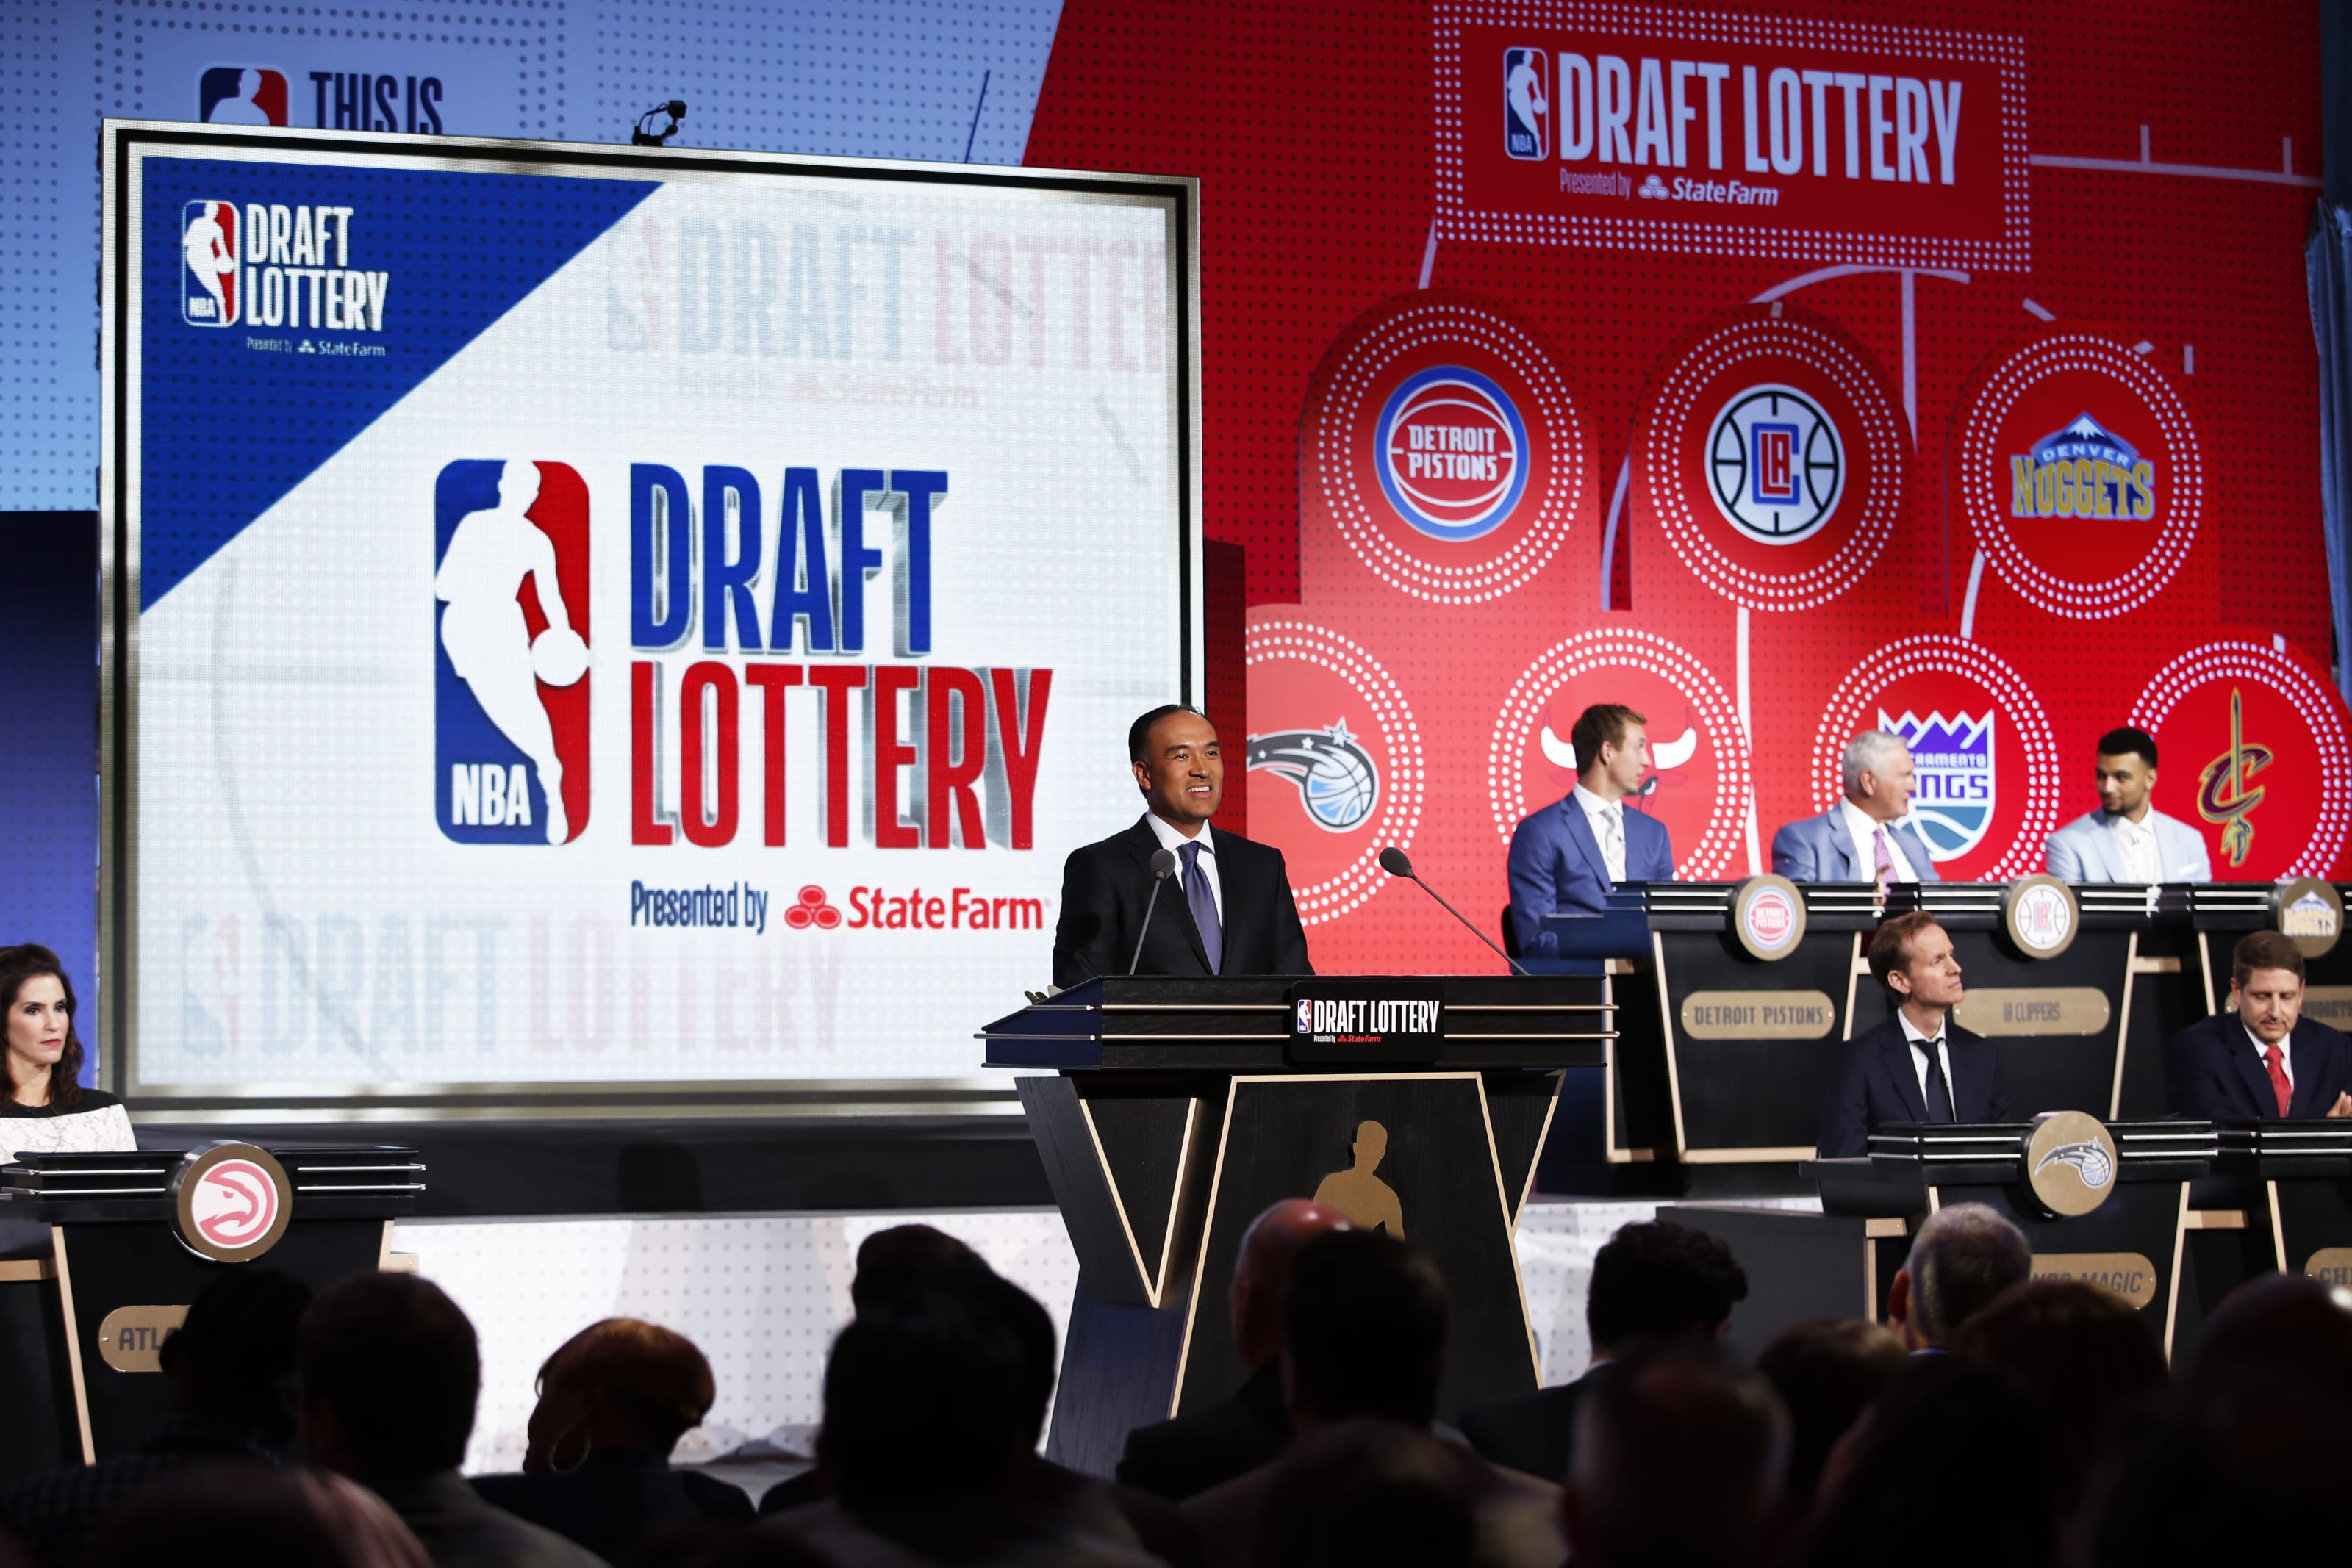 everything you need to for the nba draft lottery